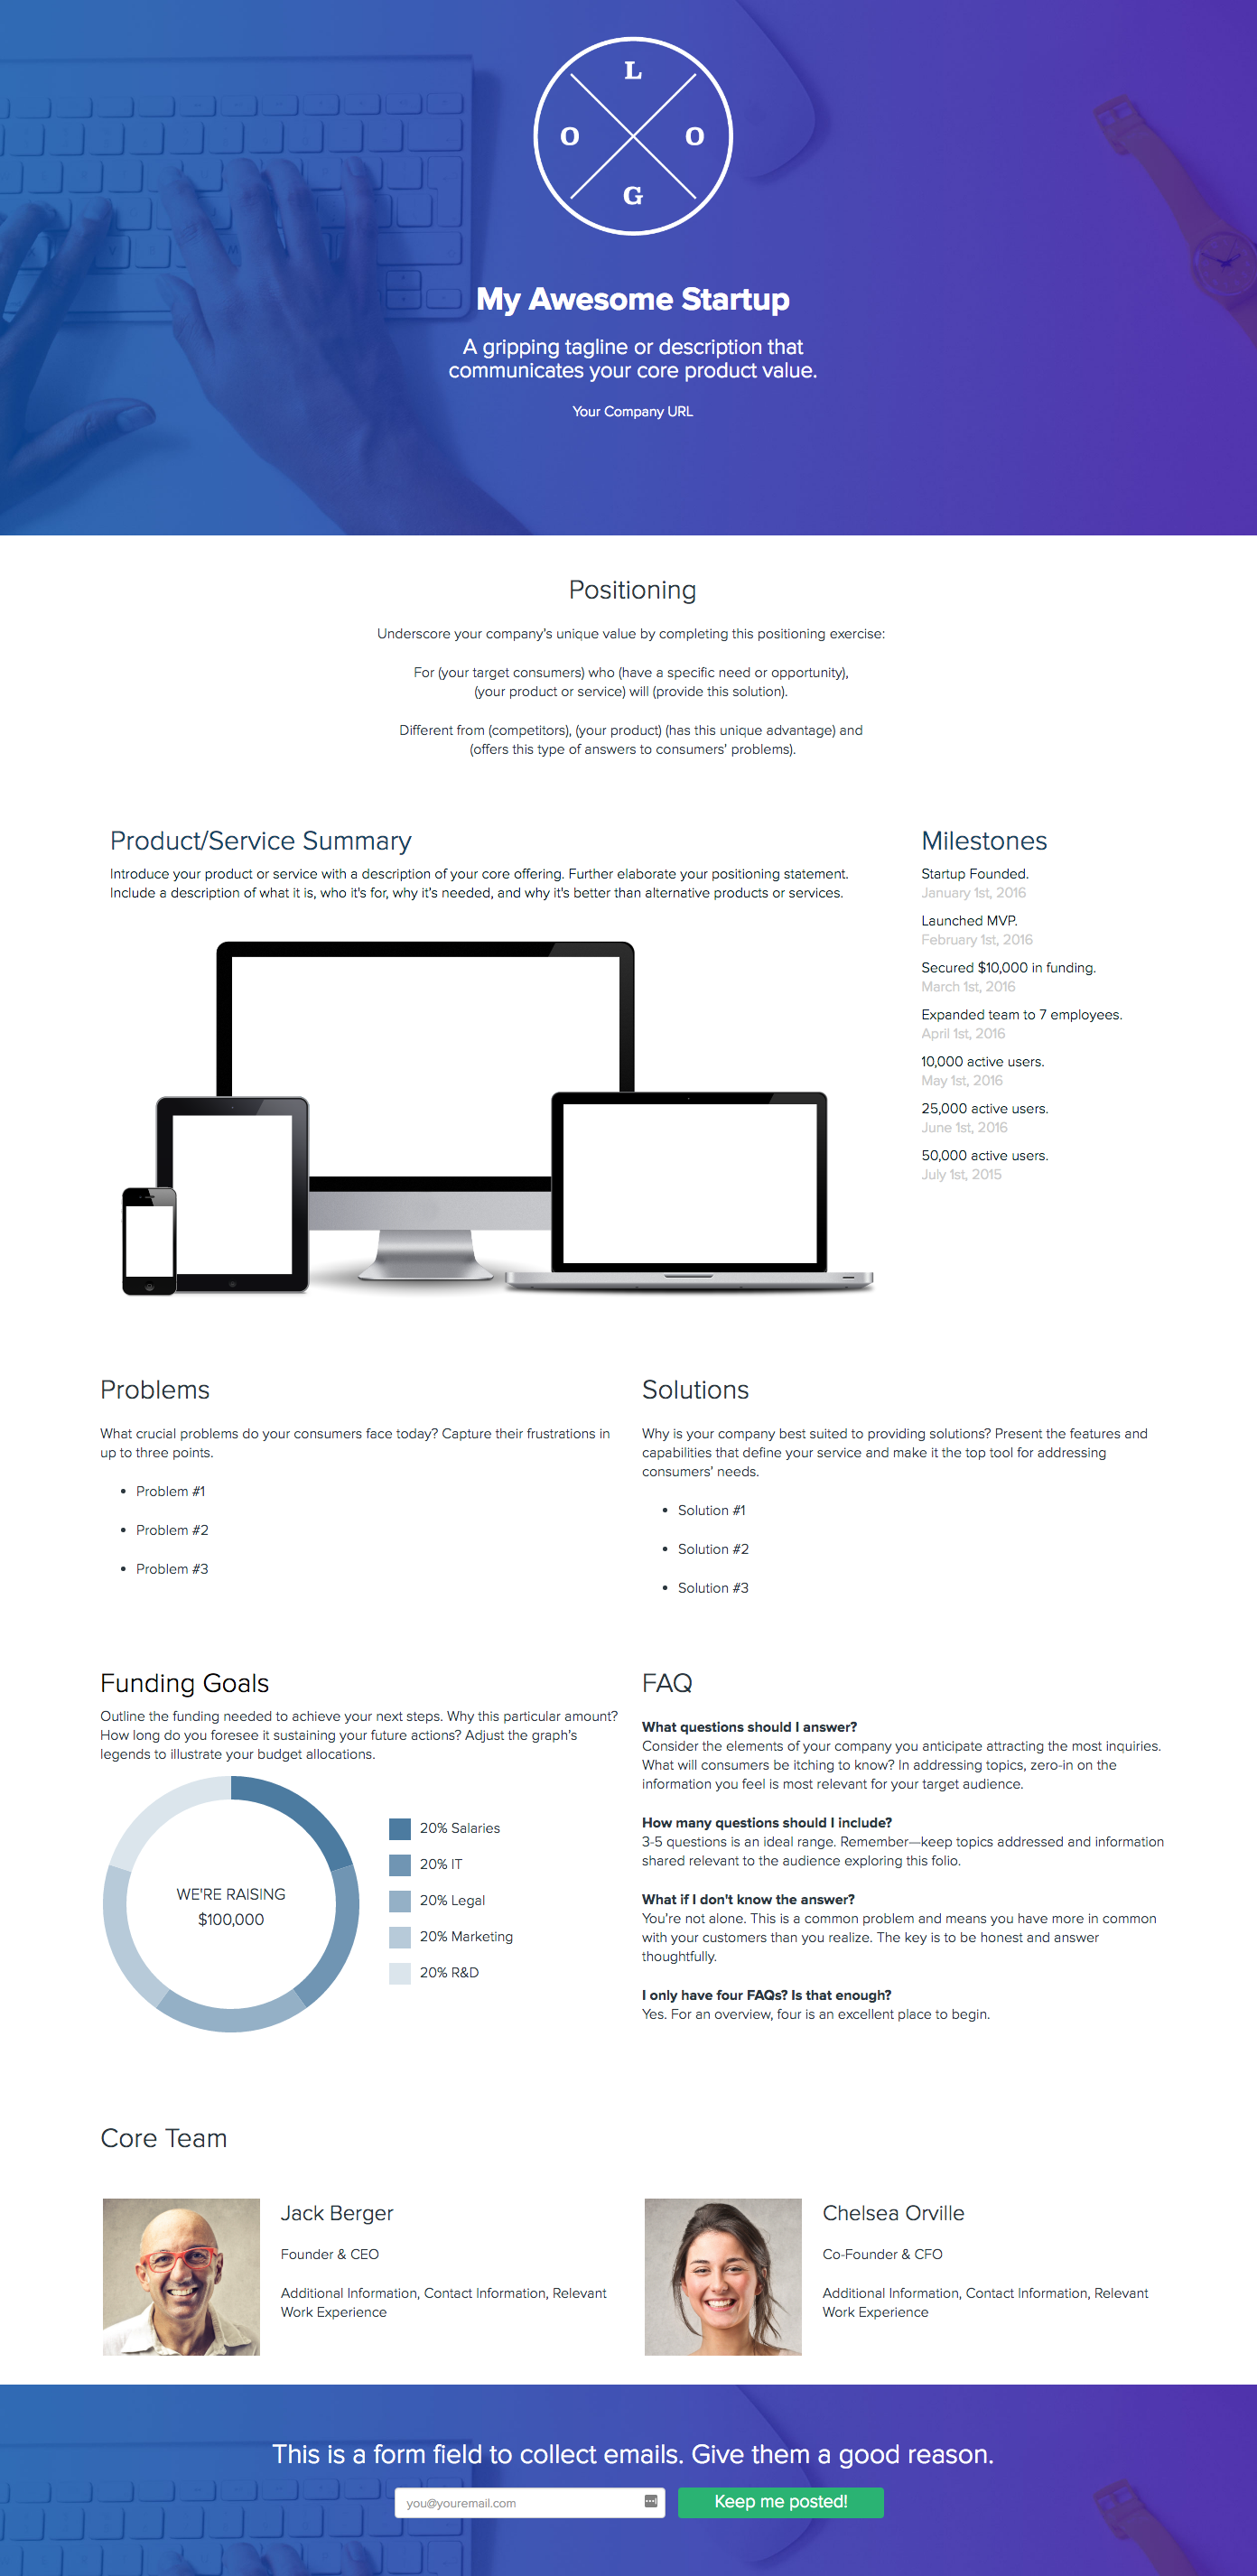 How To Create A Company One Pager Xtensio Create A Company One Pager Design Pagers